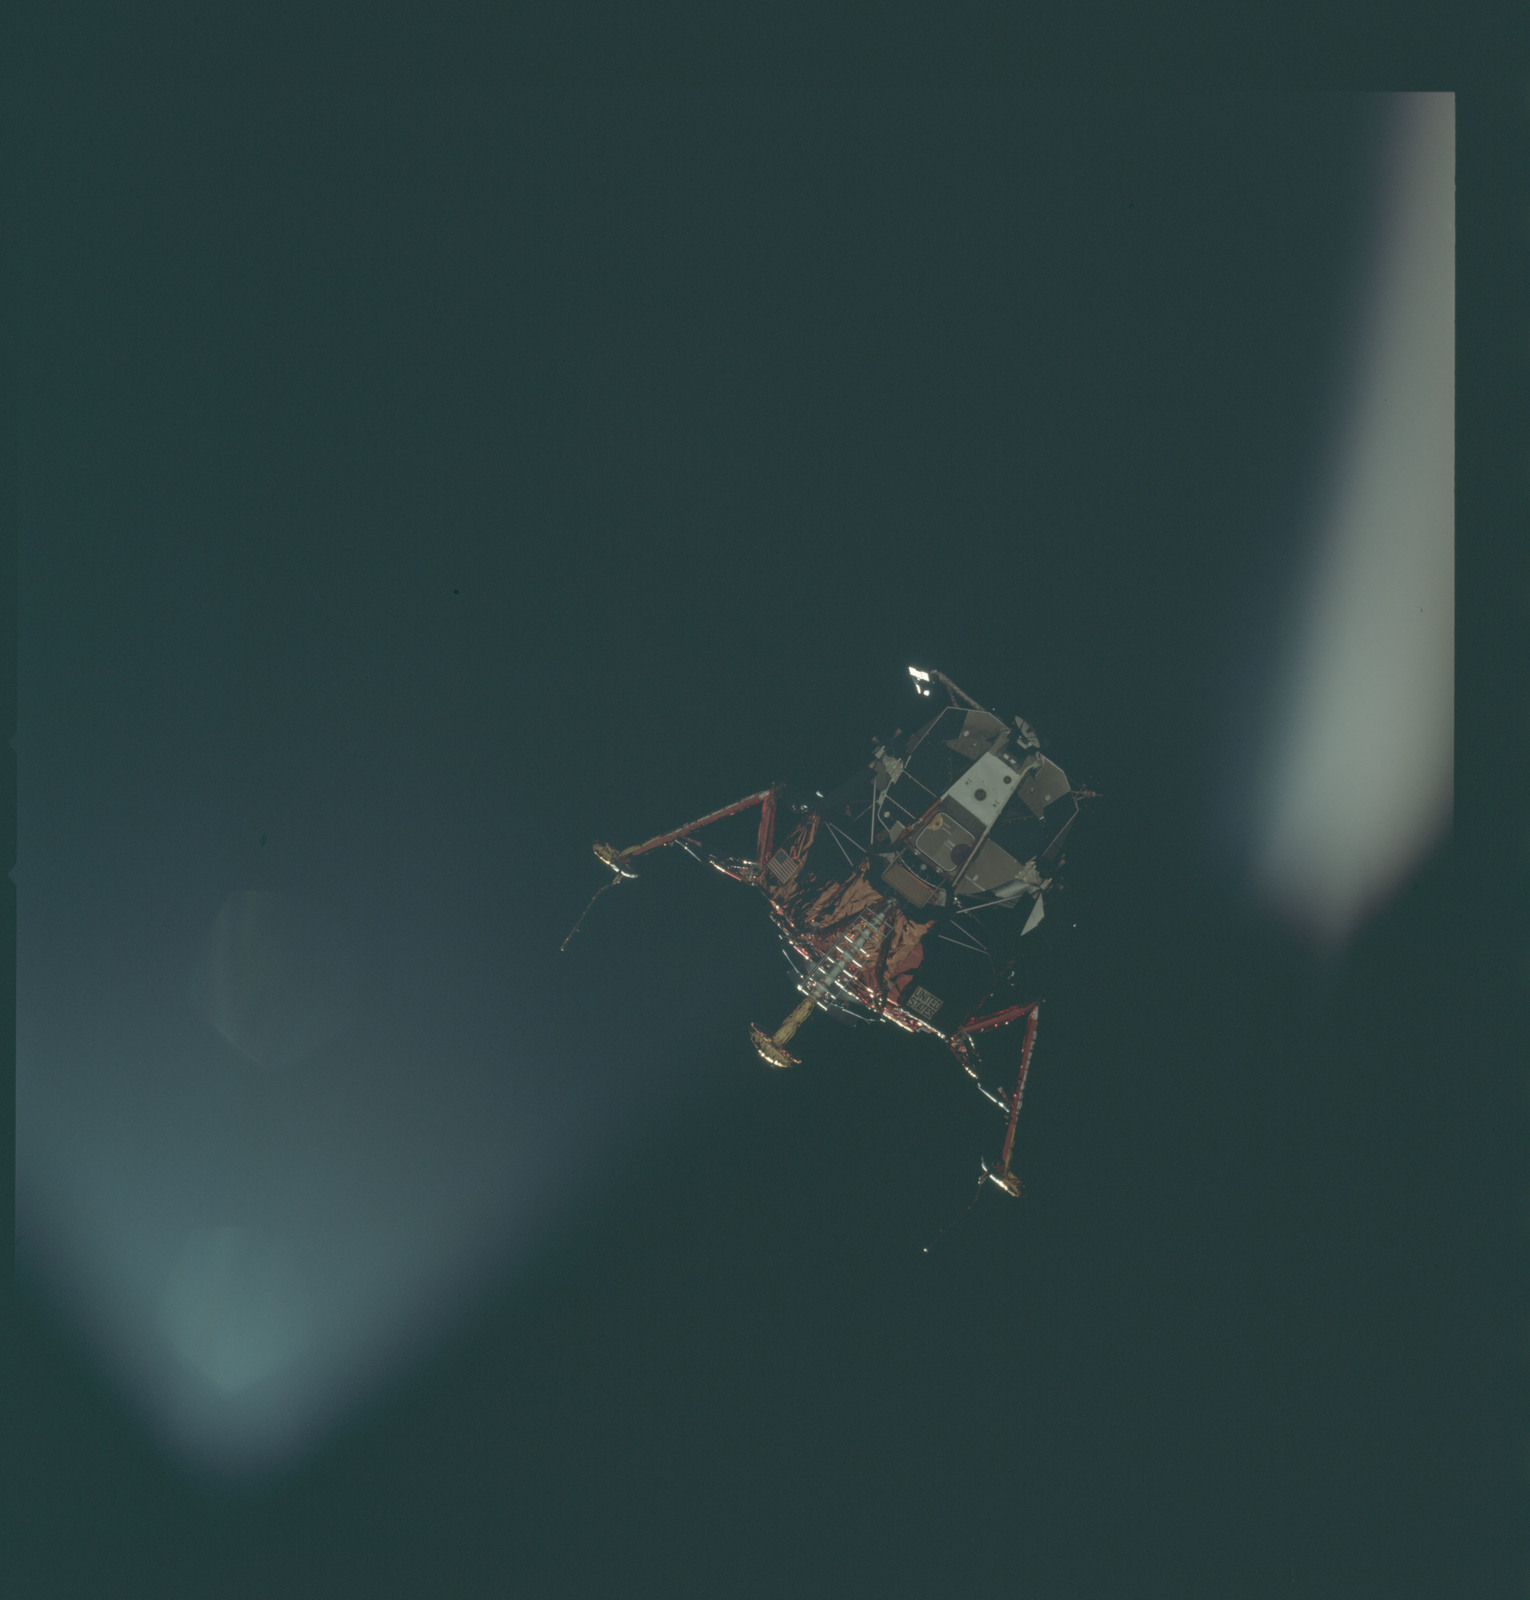 AS11-44-6586 - Apollo 11 - Apollo 11 Mission image - View of Lunar Module separation from the Command Module